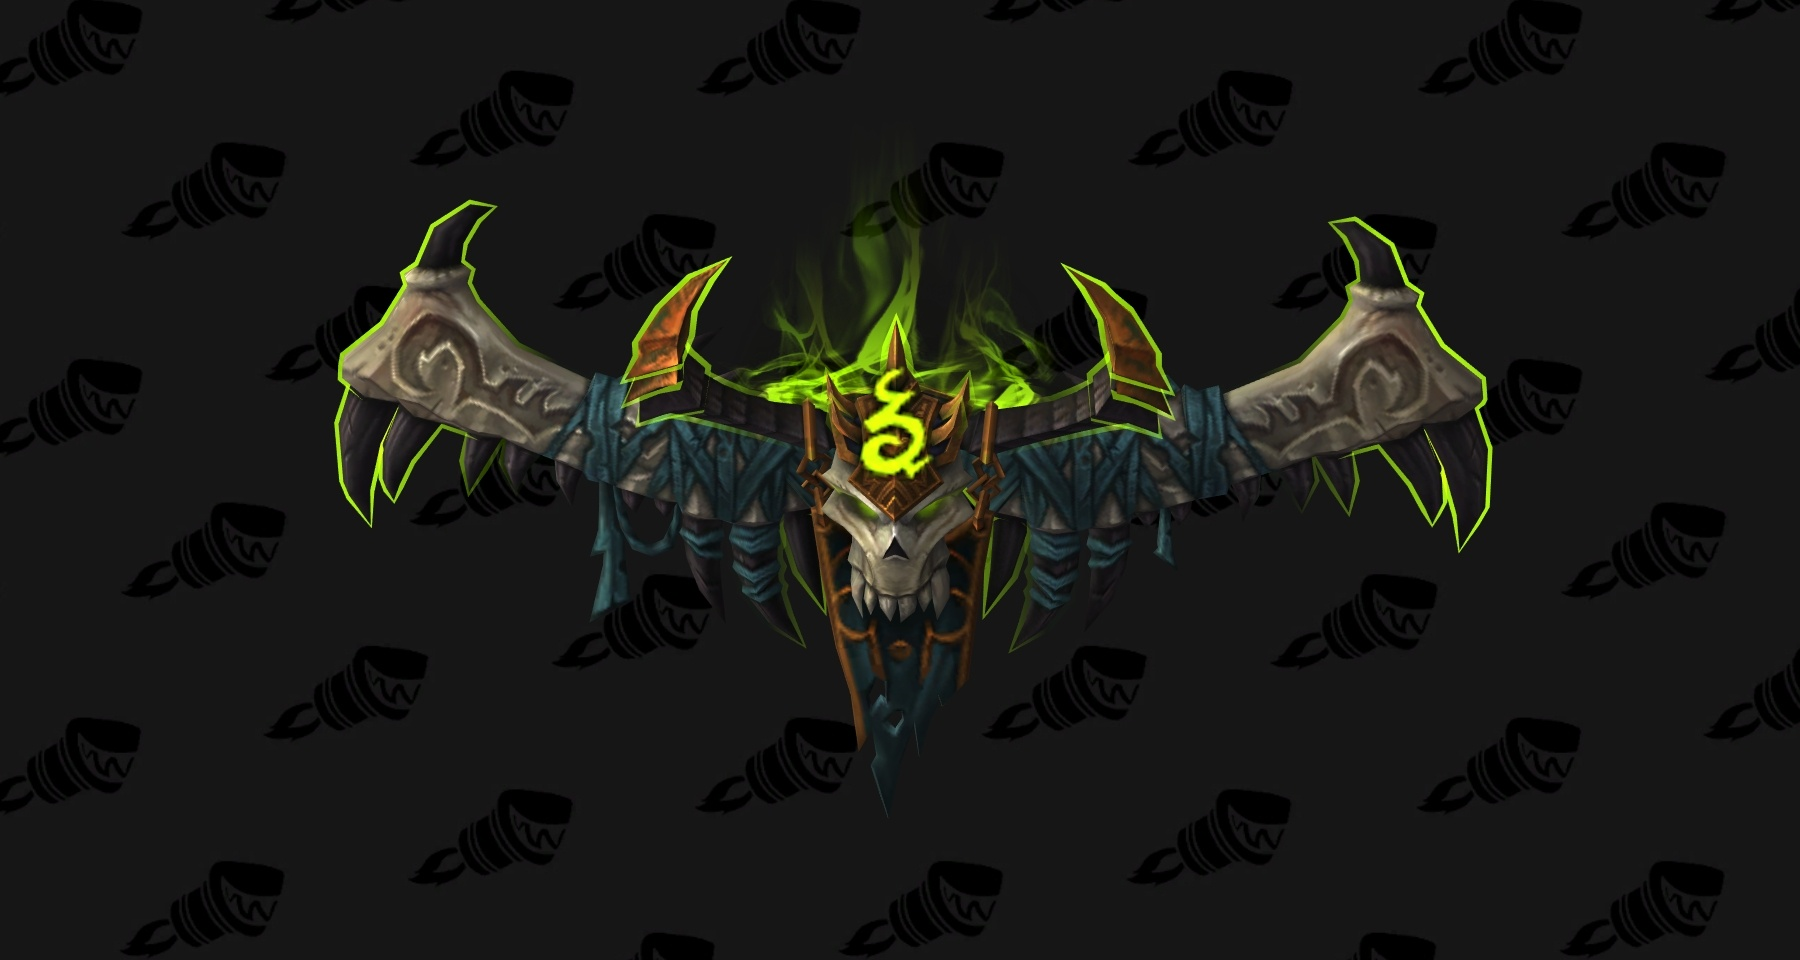 How to Unlock Artifact Appearances - Guides - Wowhead